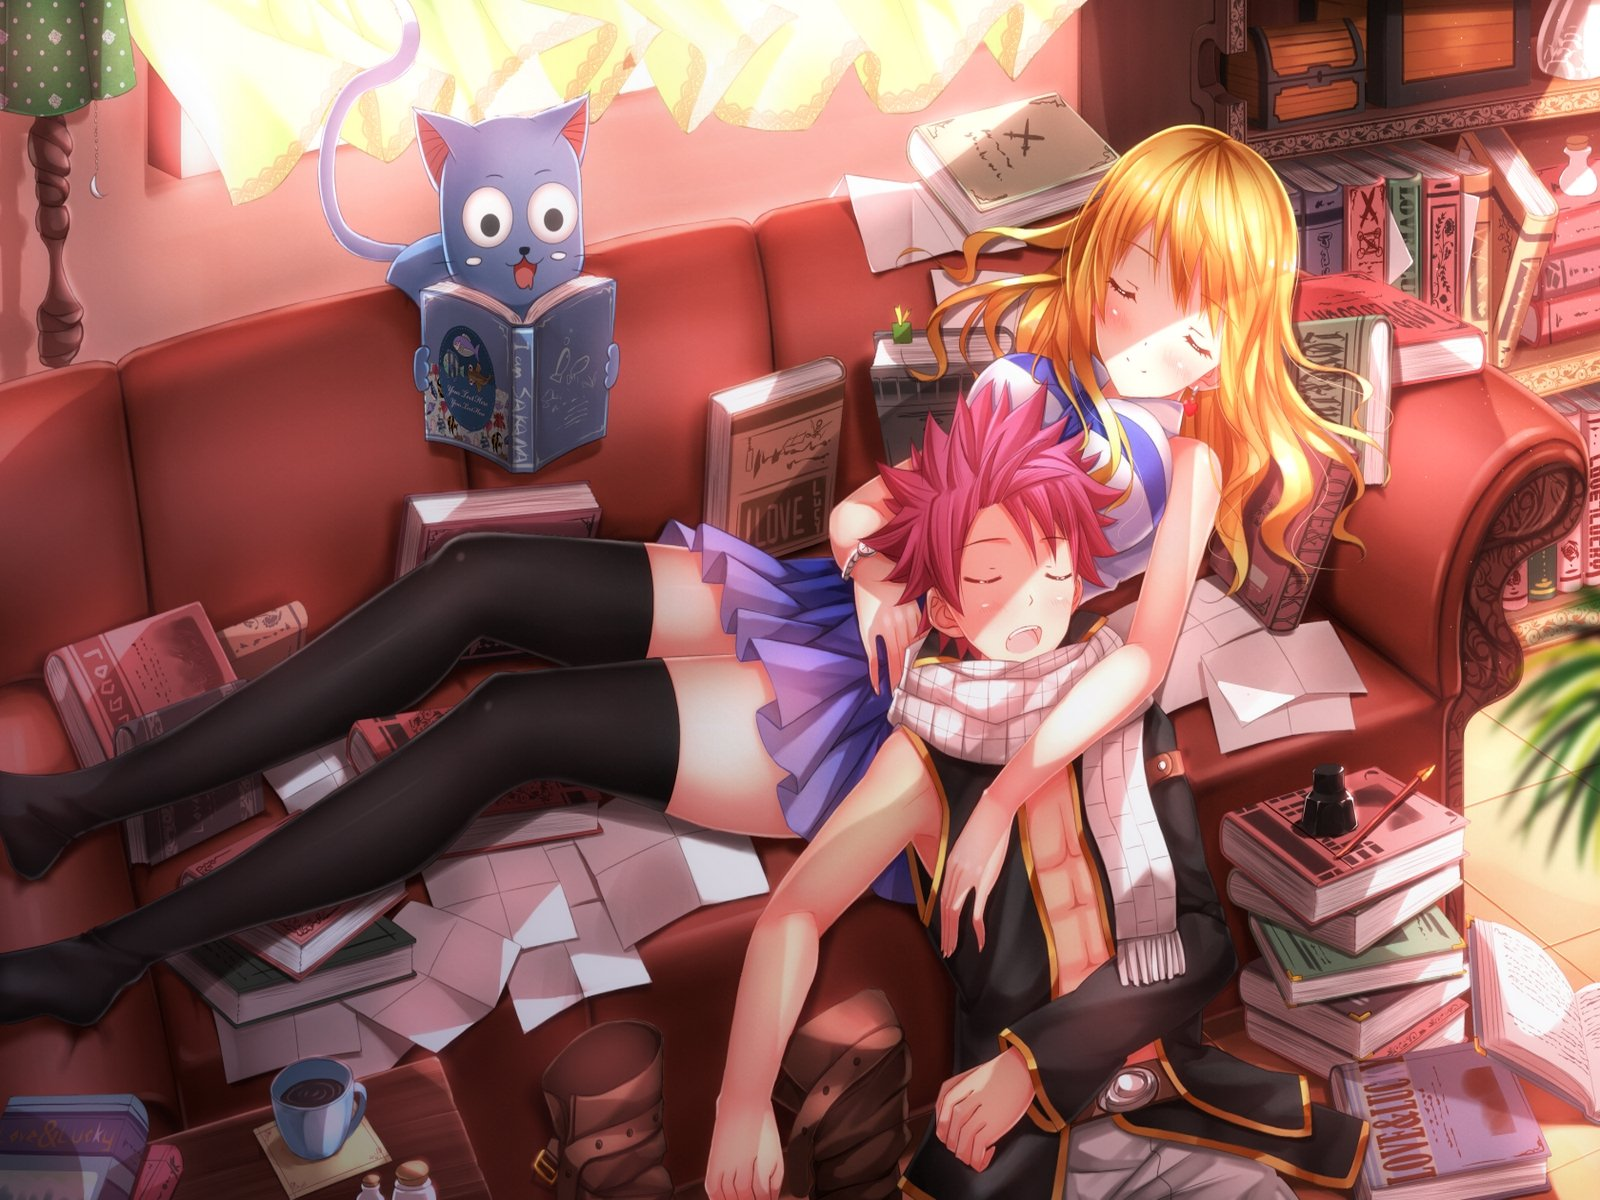 Fairy tail Natsu Lucy and Happy wallpaper 1600x1200 786610 1600x1200